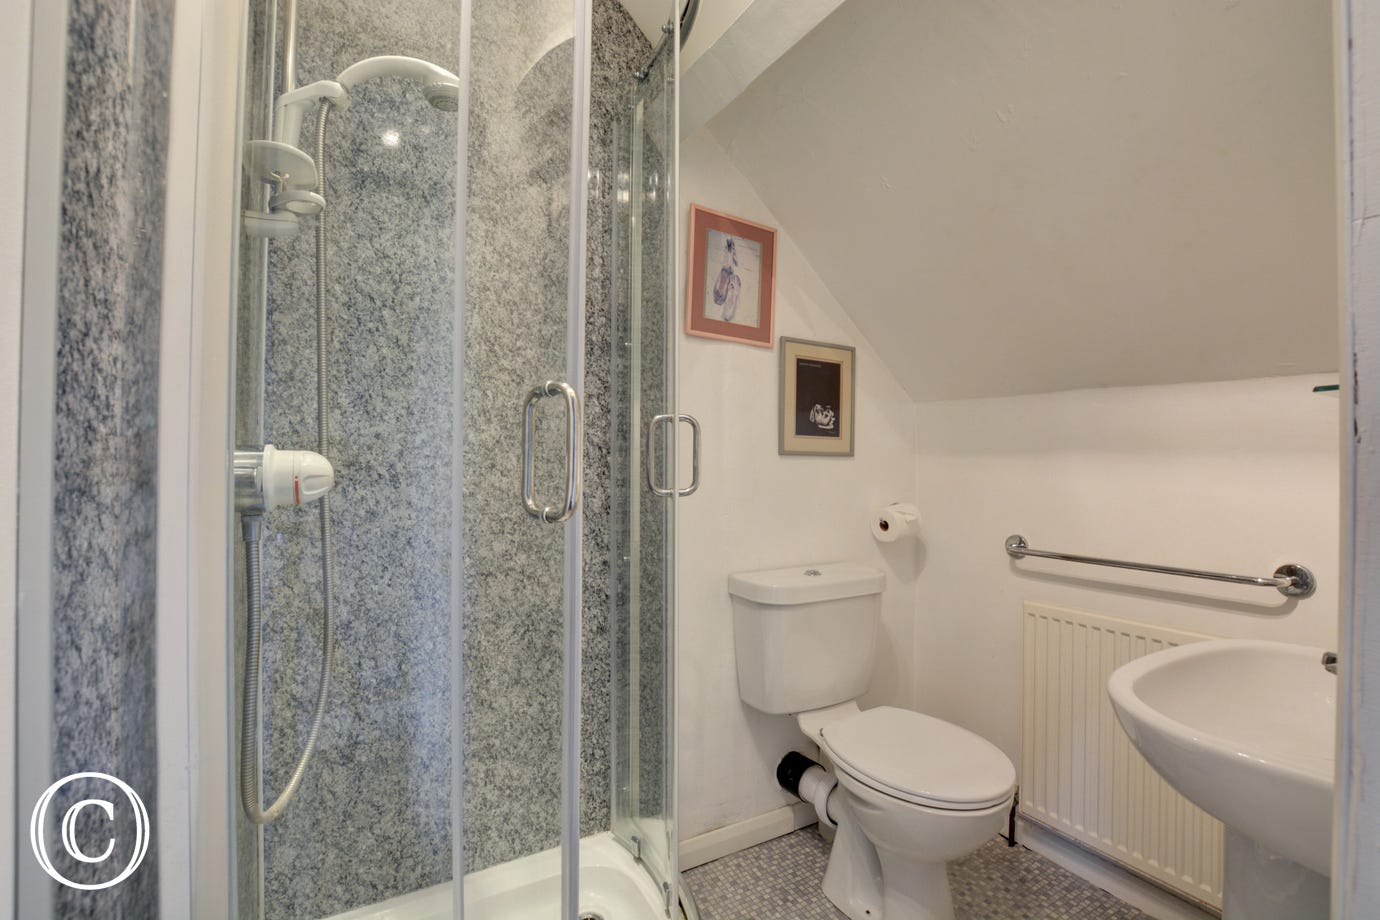 The en suite shower room with cubicle